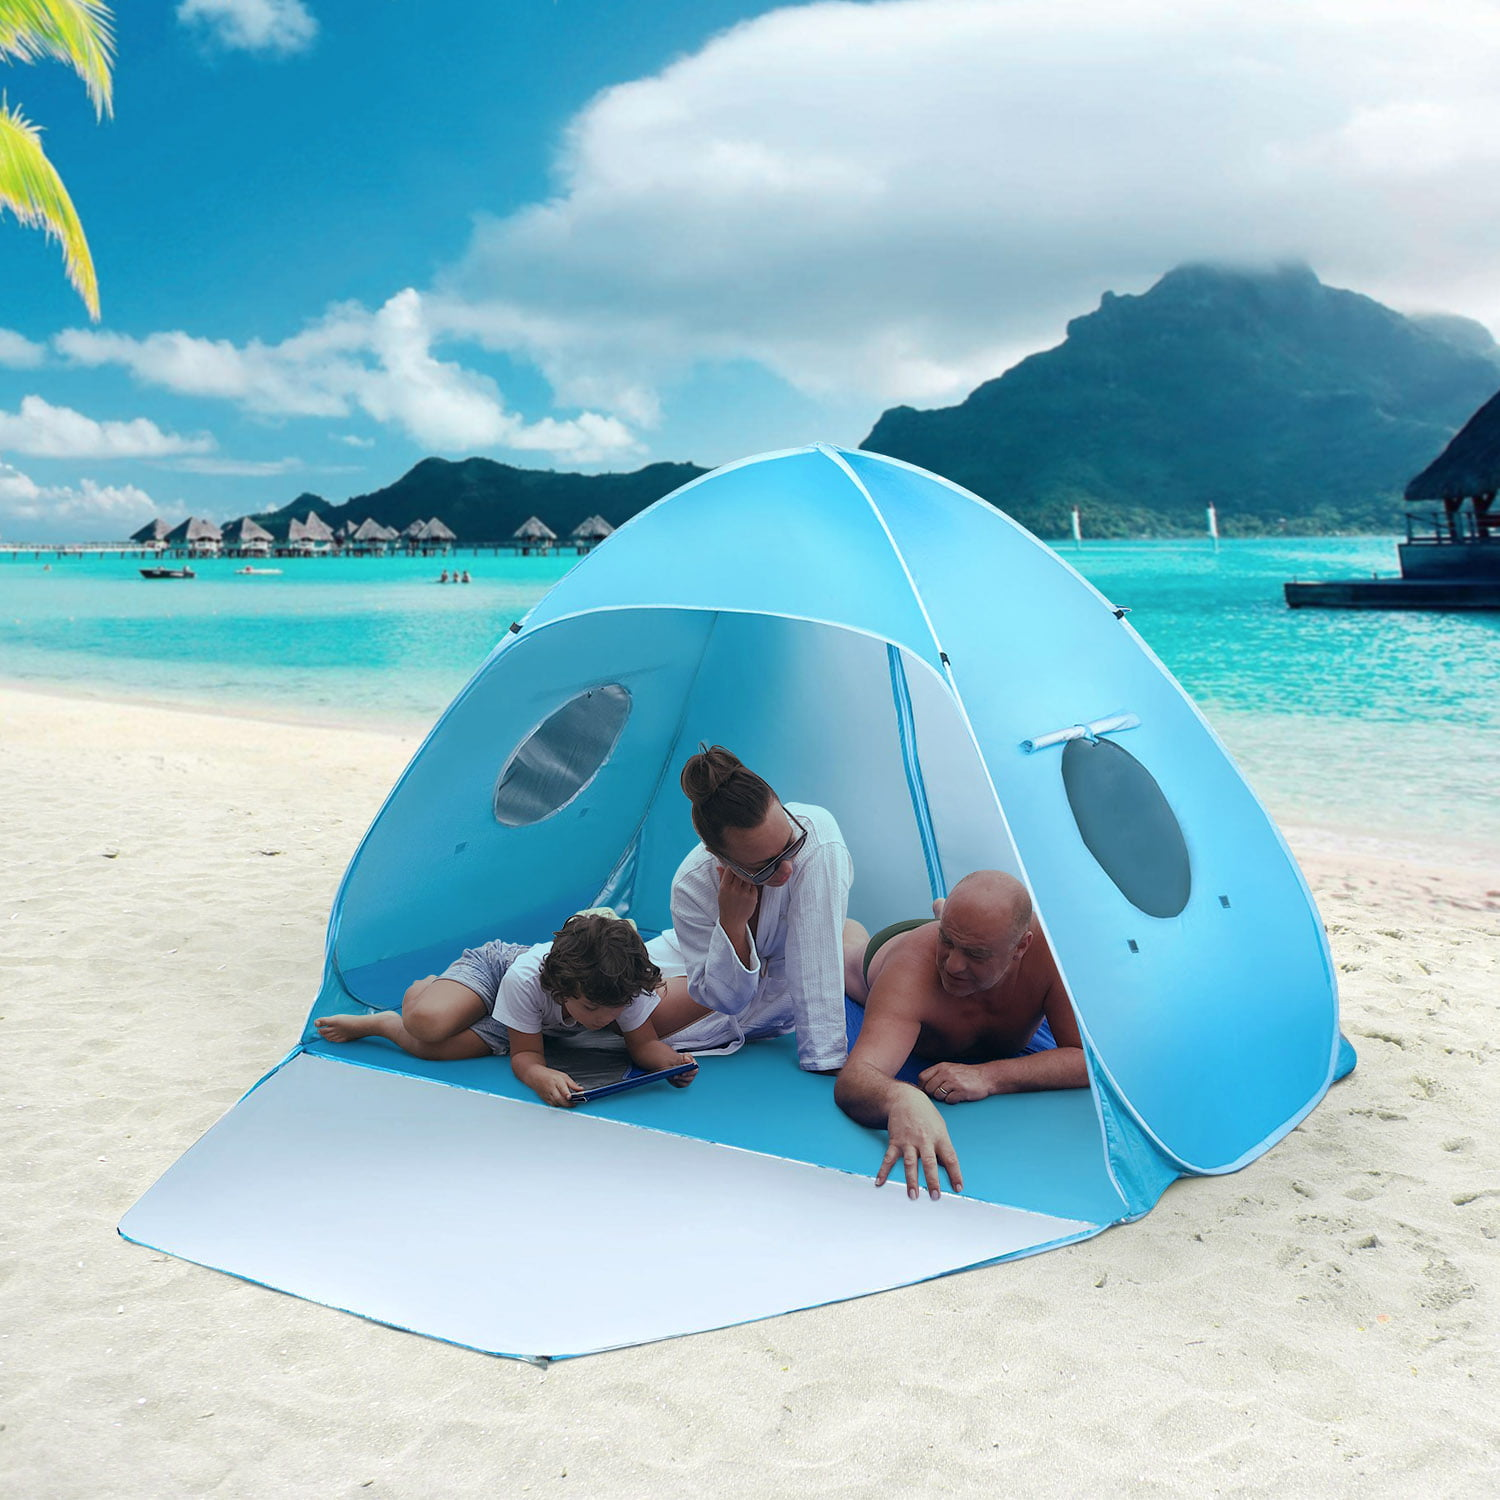 Icorer Extra Large Pop Up Instant Portable Outdoors 2 3